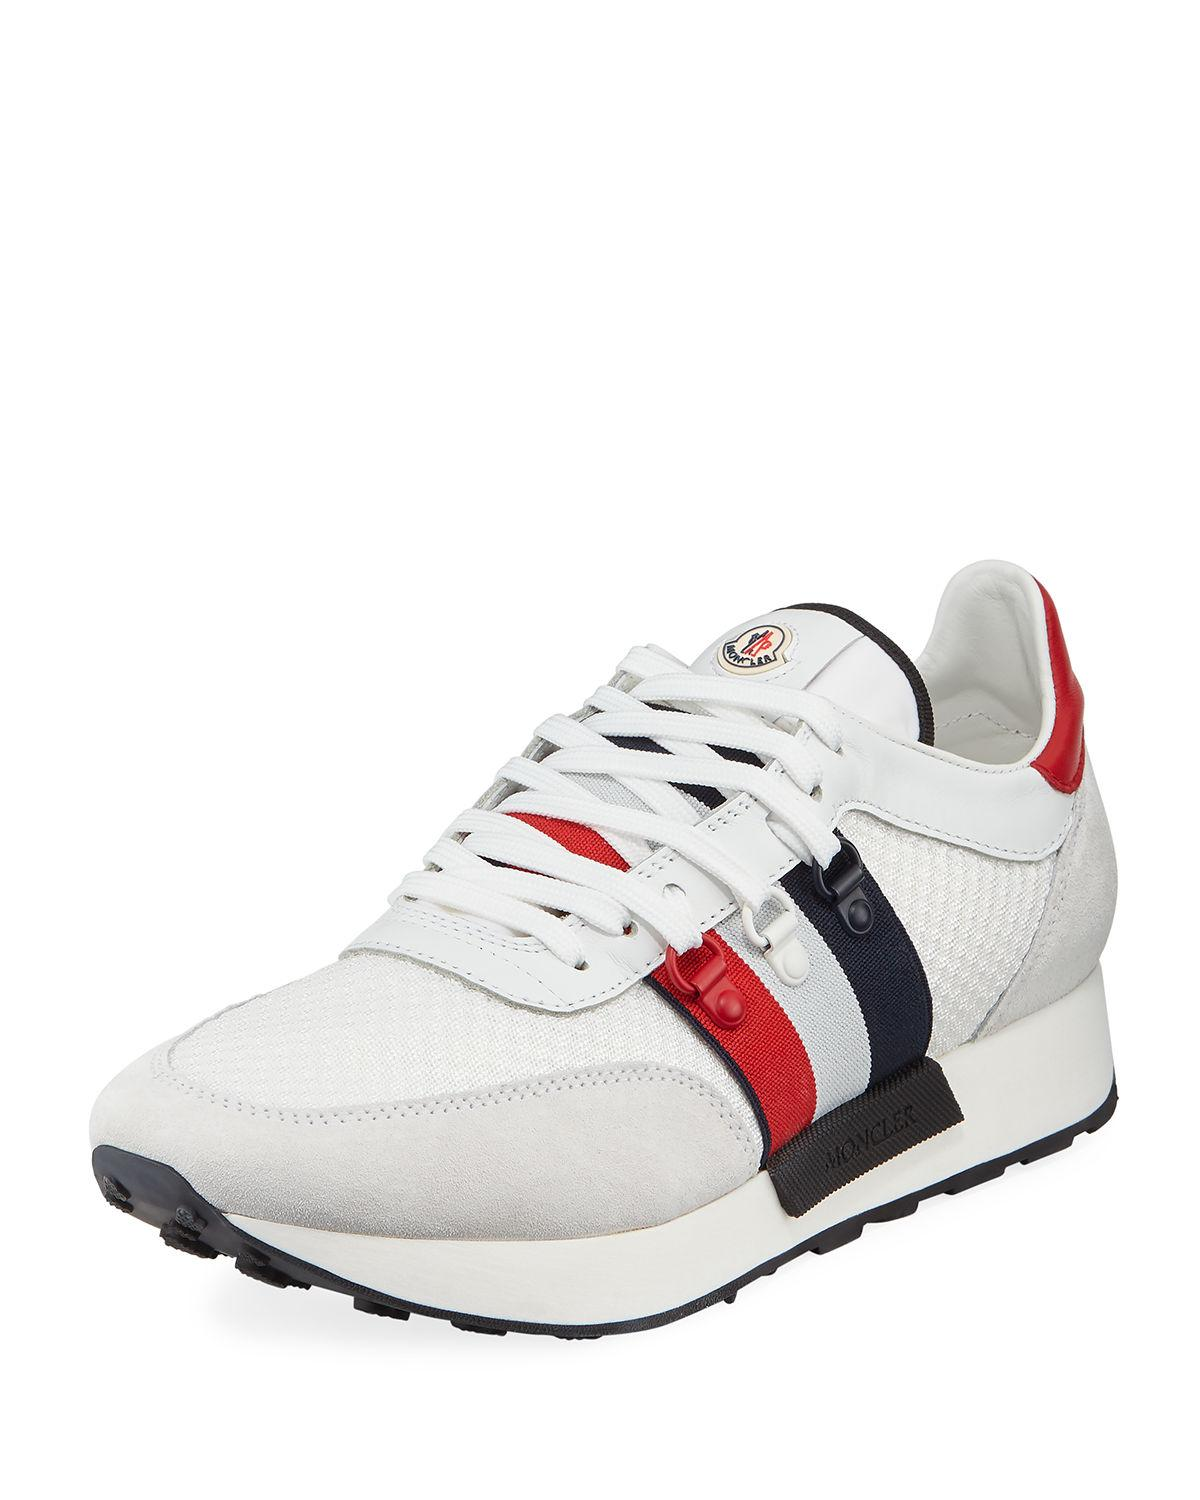 moncler mens white trainers